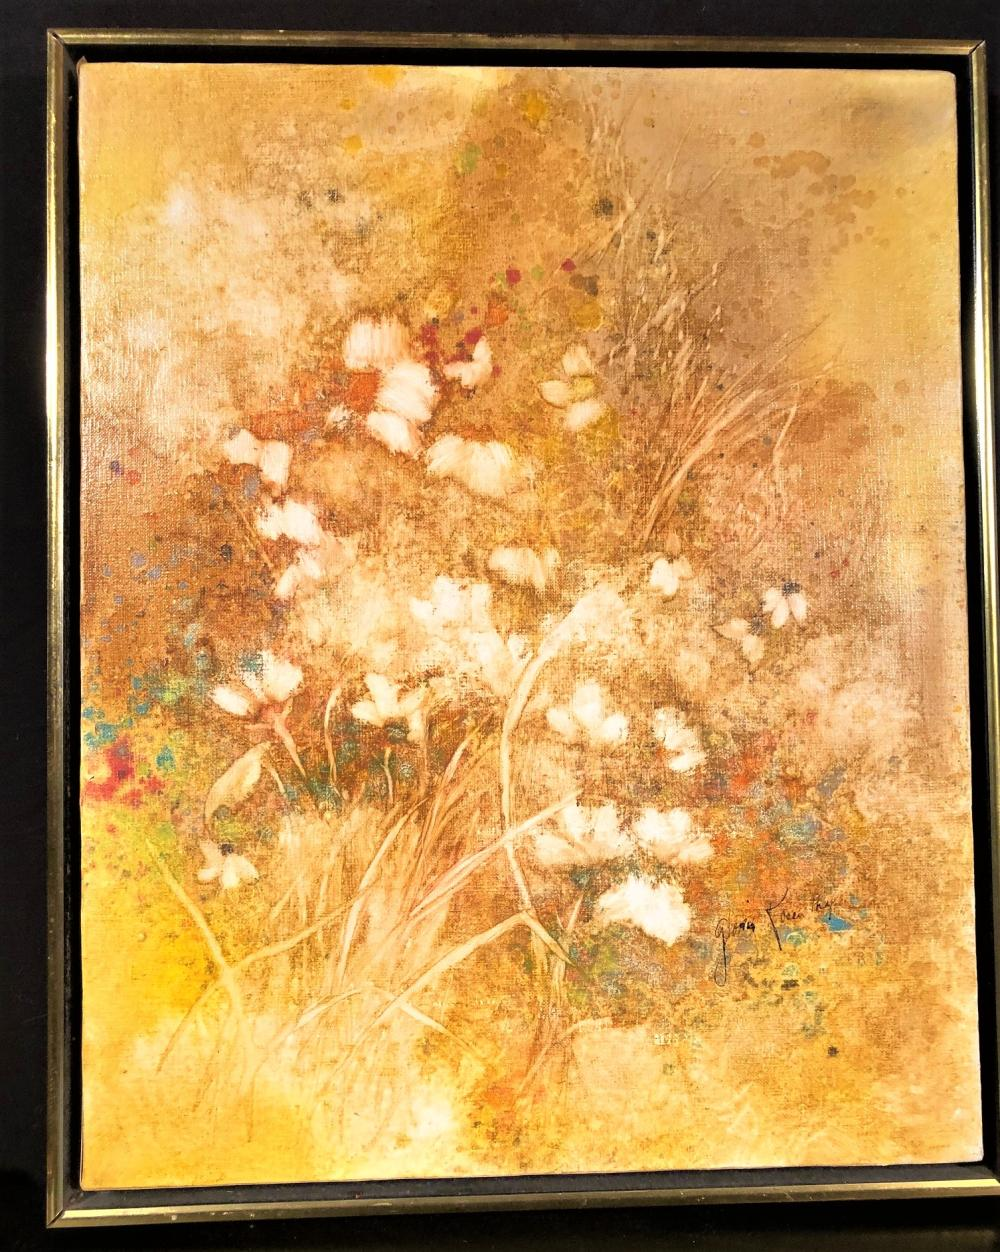 GLORIA ROSENTHAL ORIGINAL OIL PAINTING OF STILL LIFE OF FLOWERS, SIGNED ON FRONT AND REVERSE, FRAMED MEASURES 21.5in x 17.5in